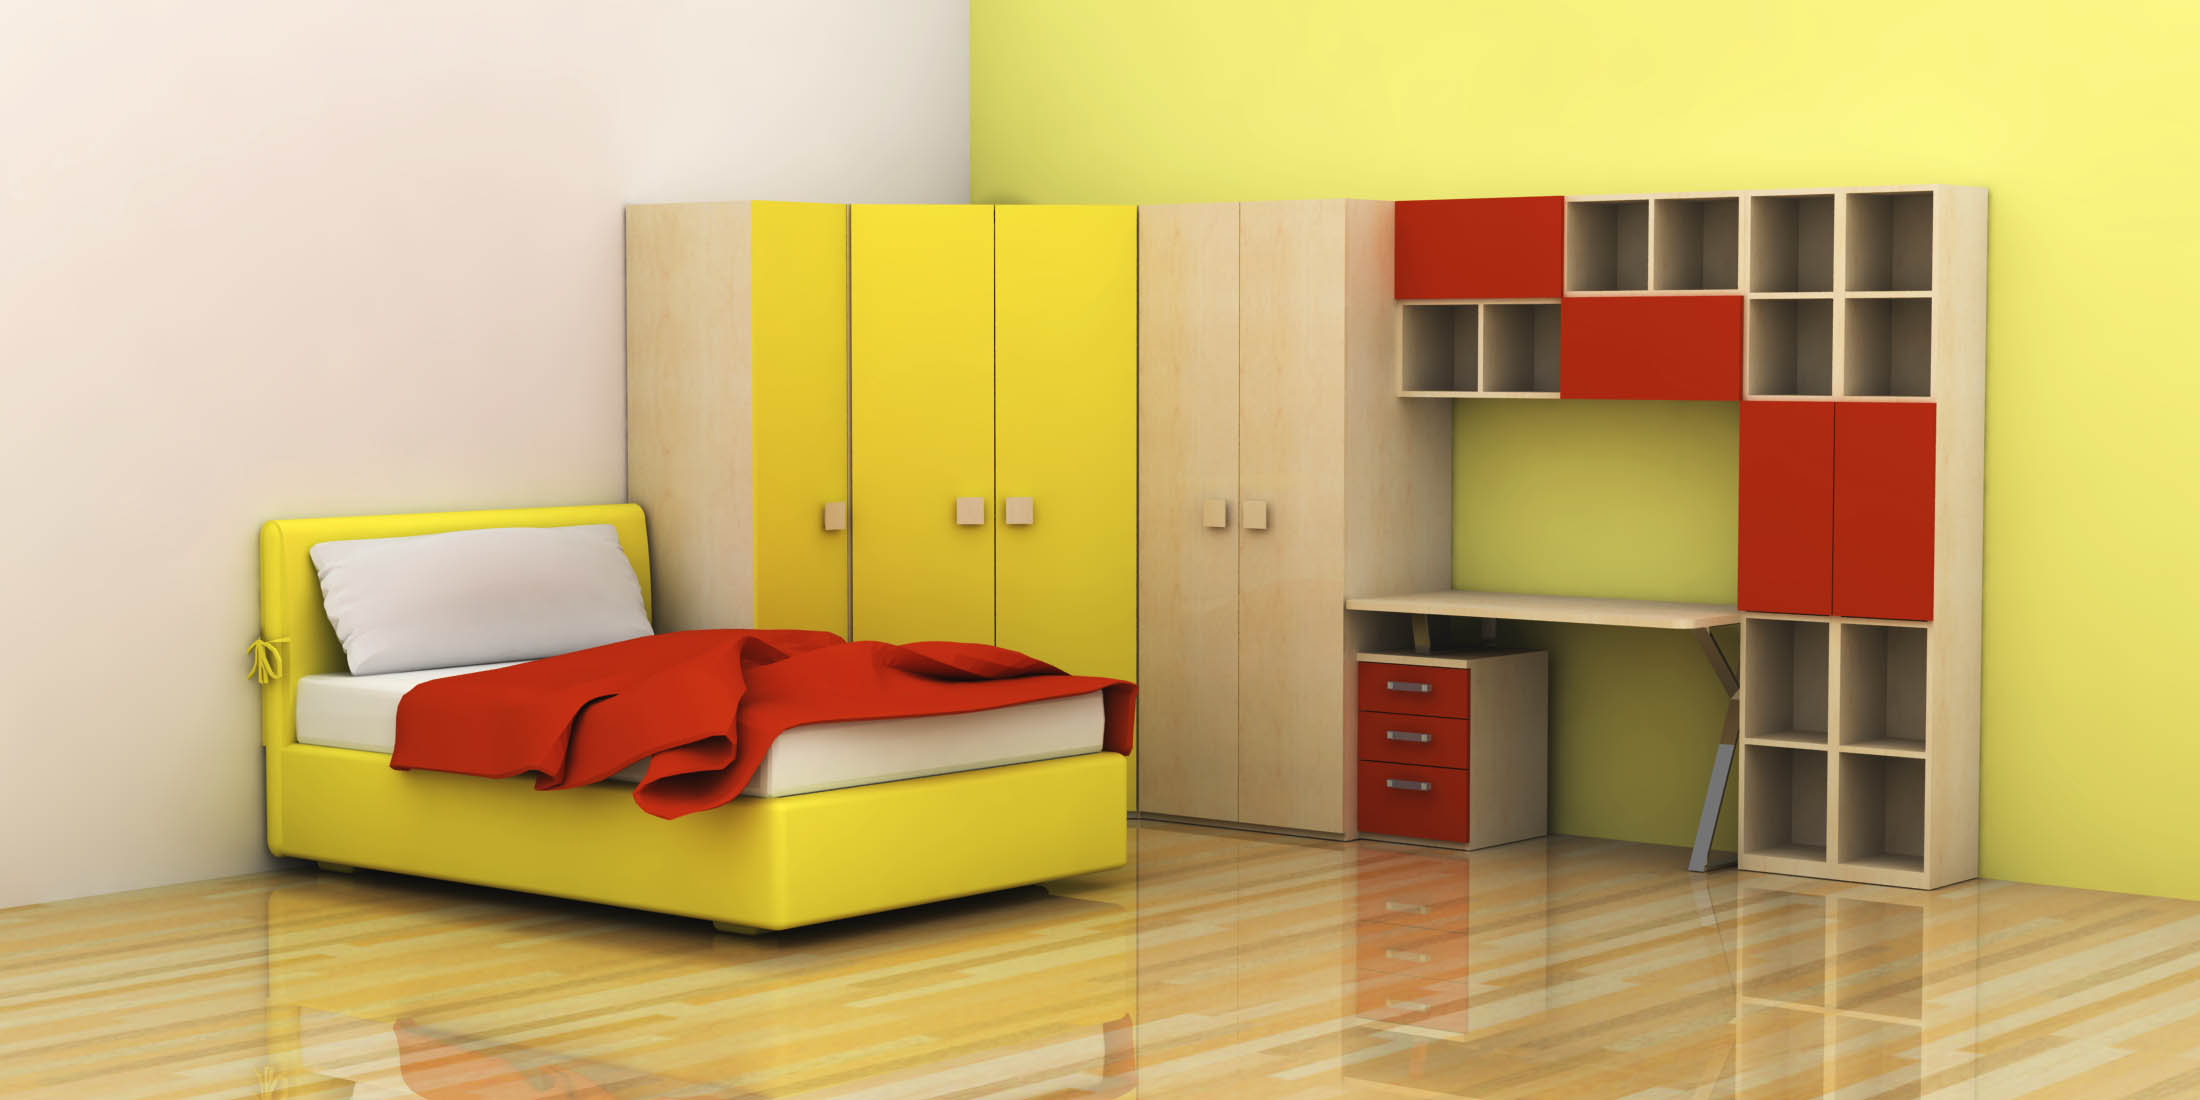 Attrayant Adorable Design Of The Bedroom Kids Areas With Yellow Wall With Brown  Wooden And Red Storage